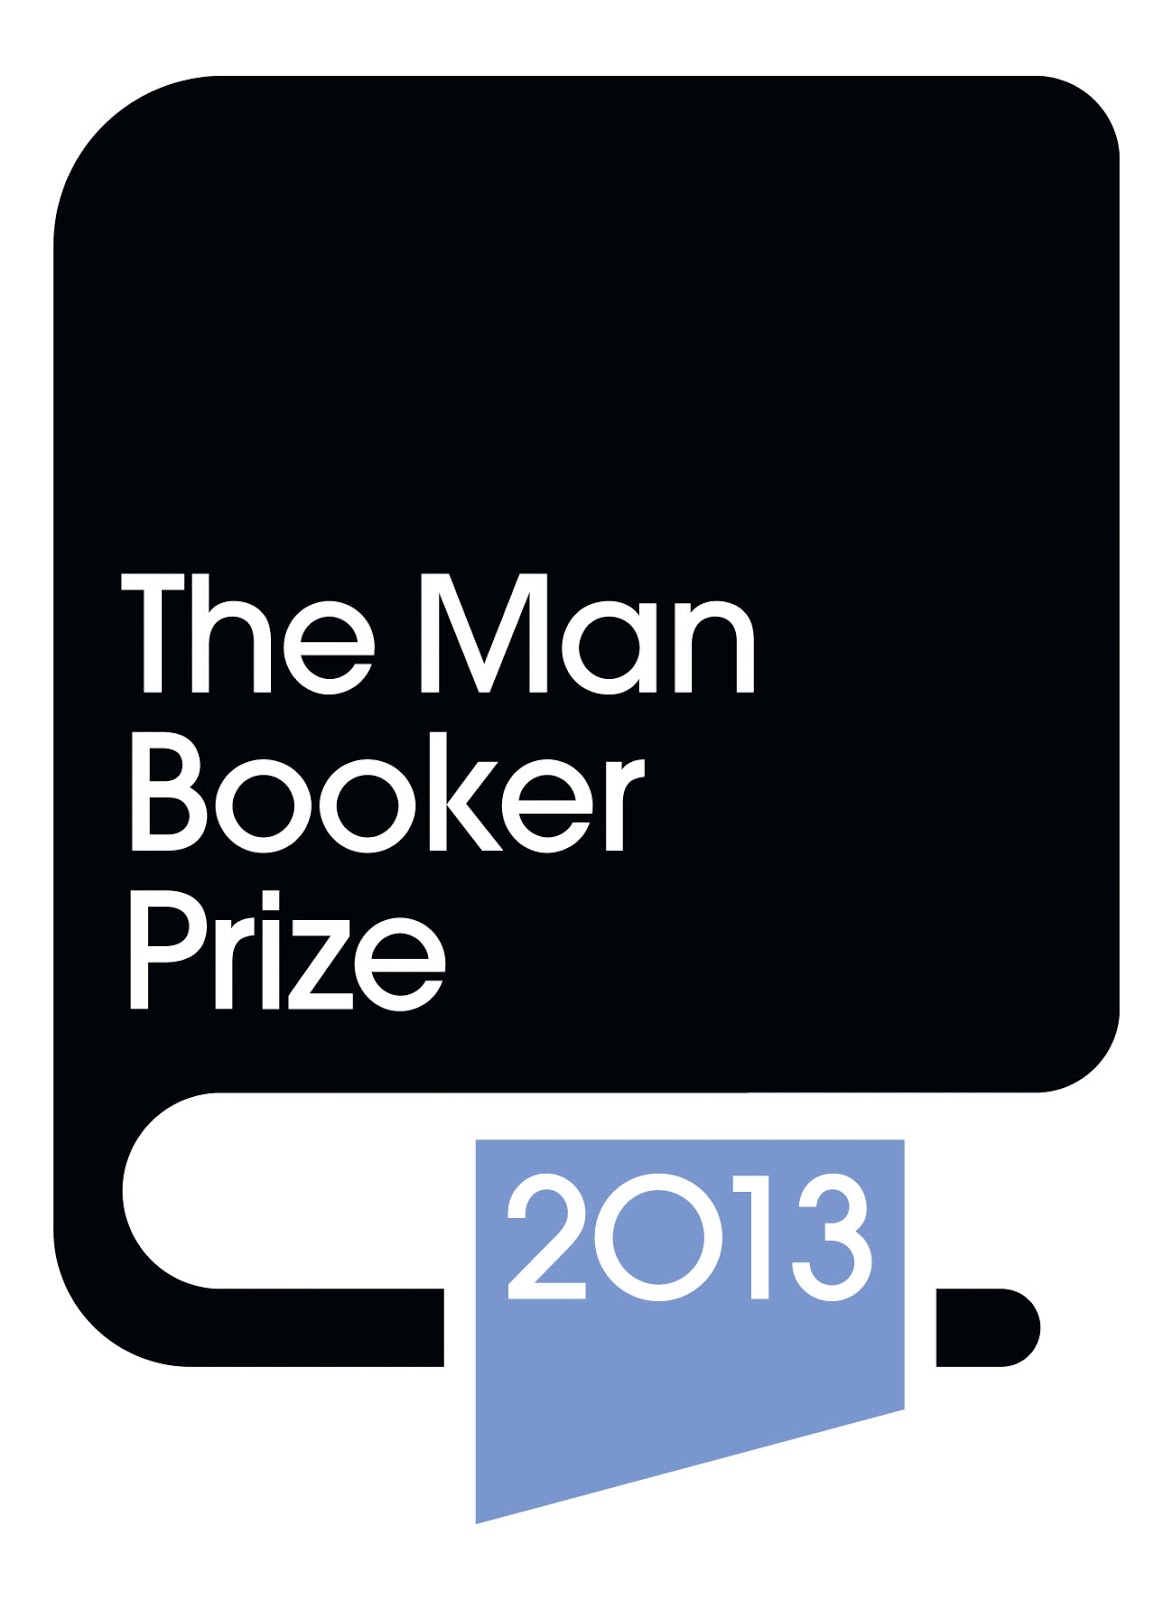 Man Booker 2013 logo